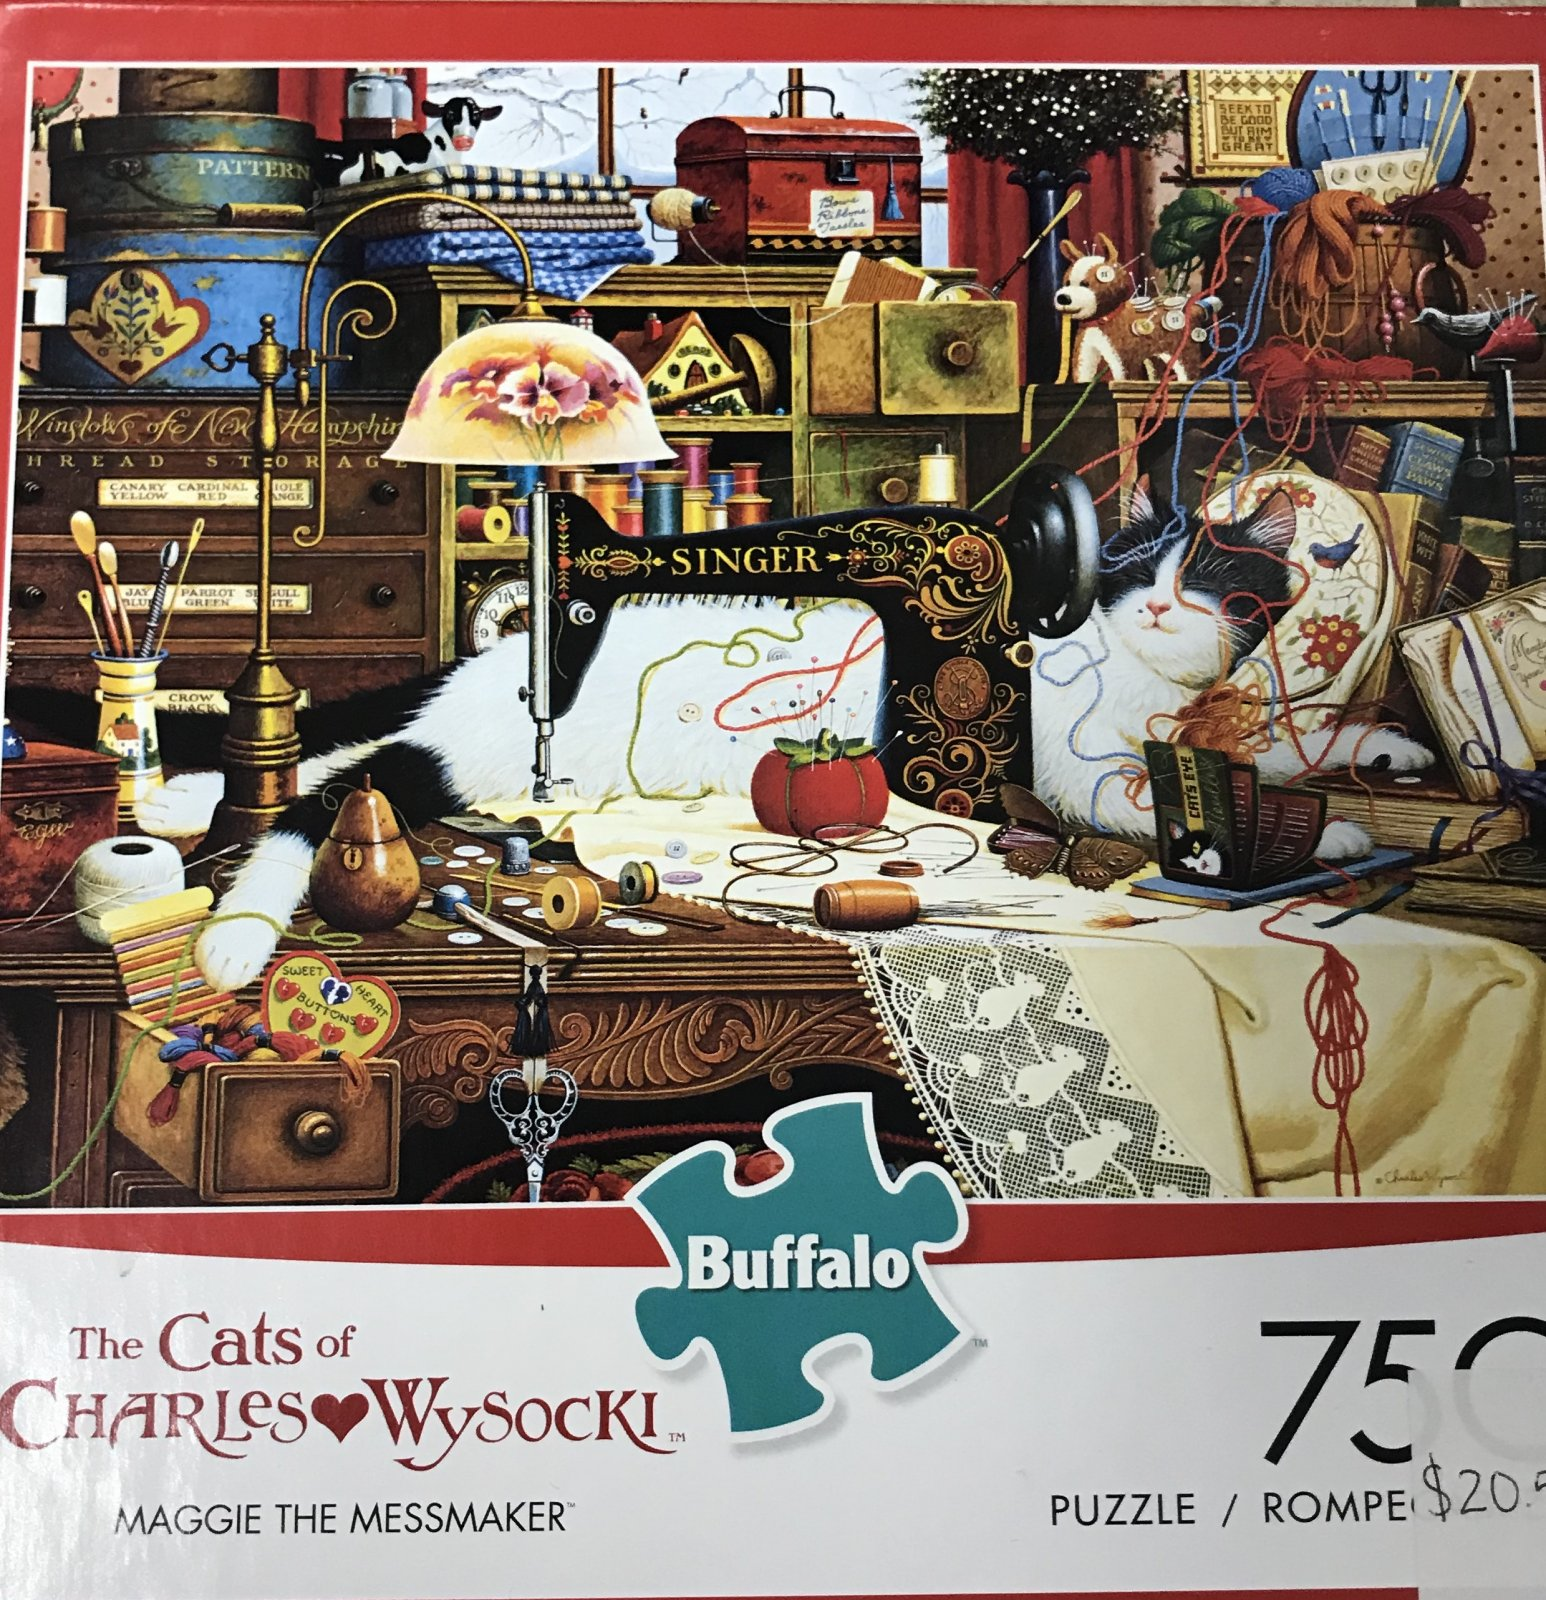 The Cats of Charles Puzzle